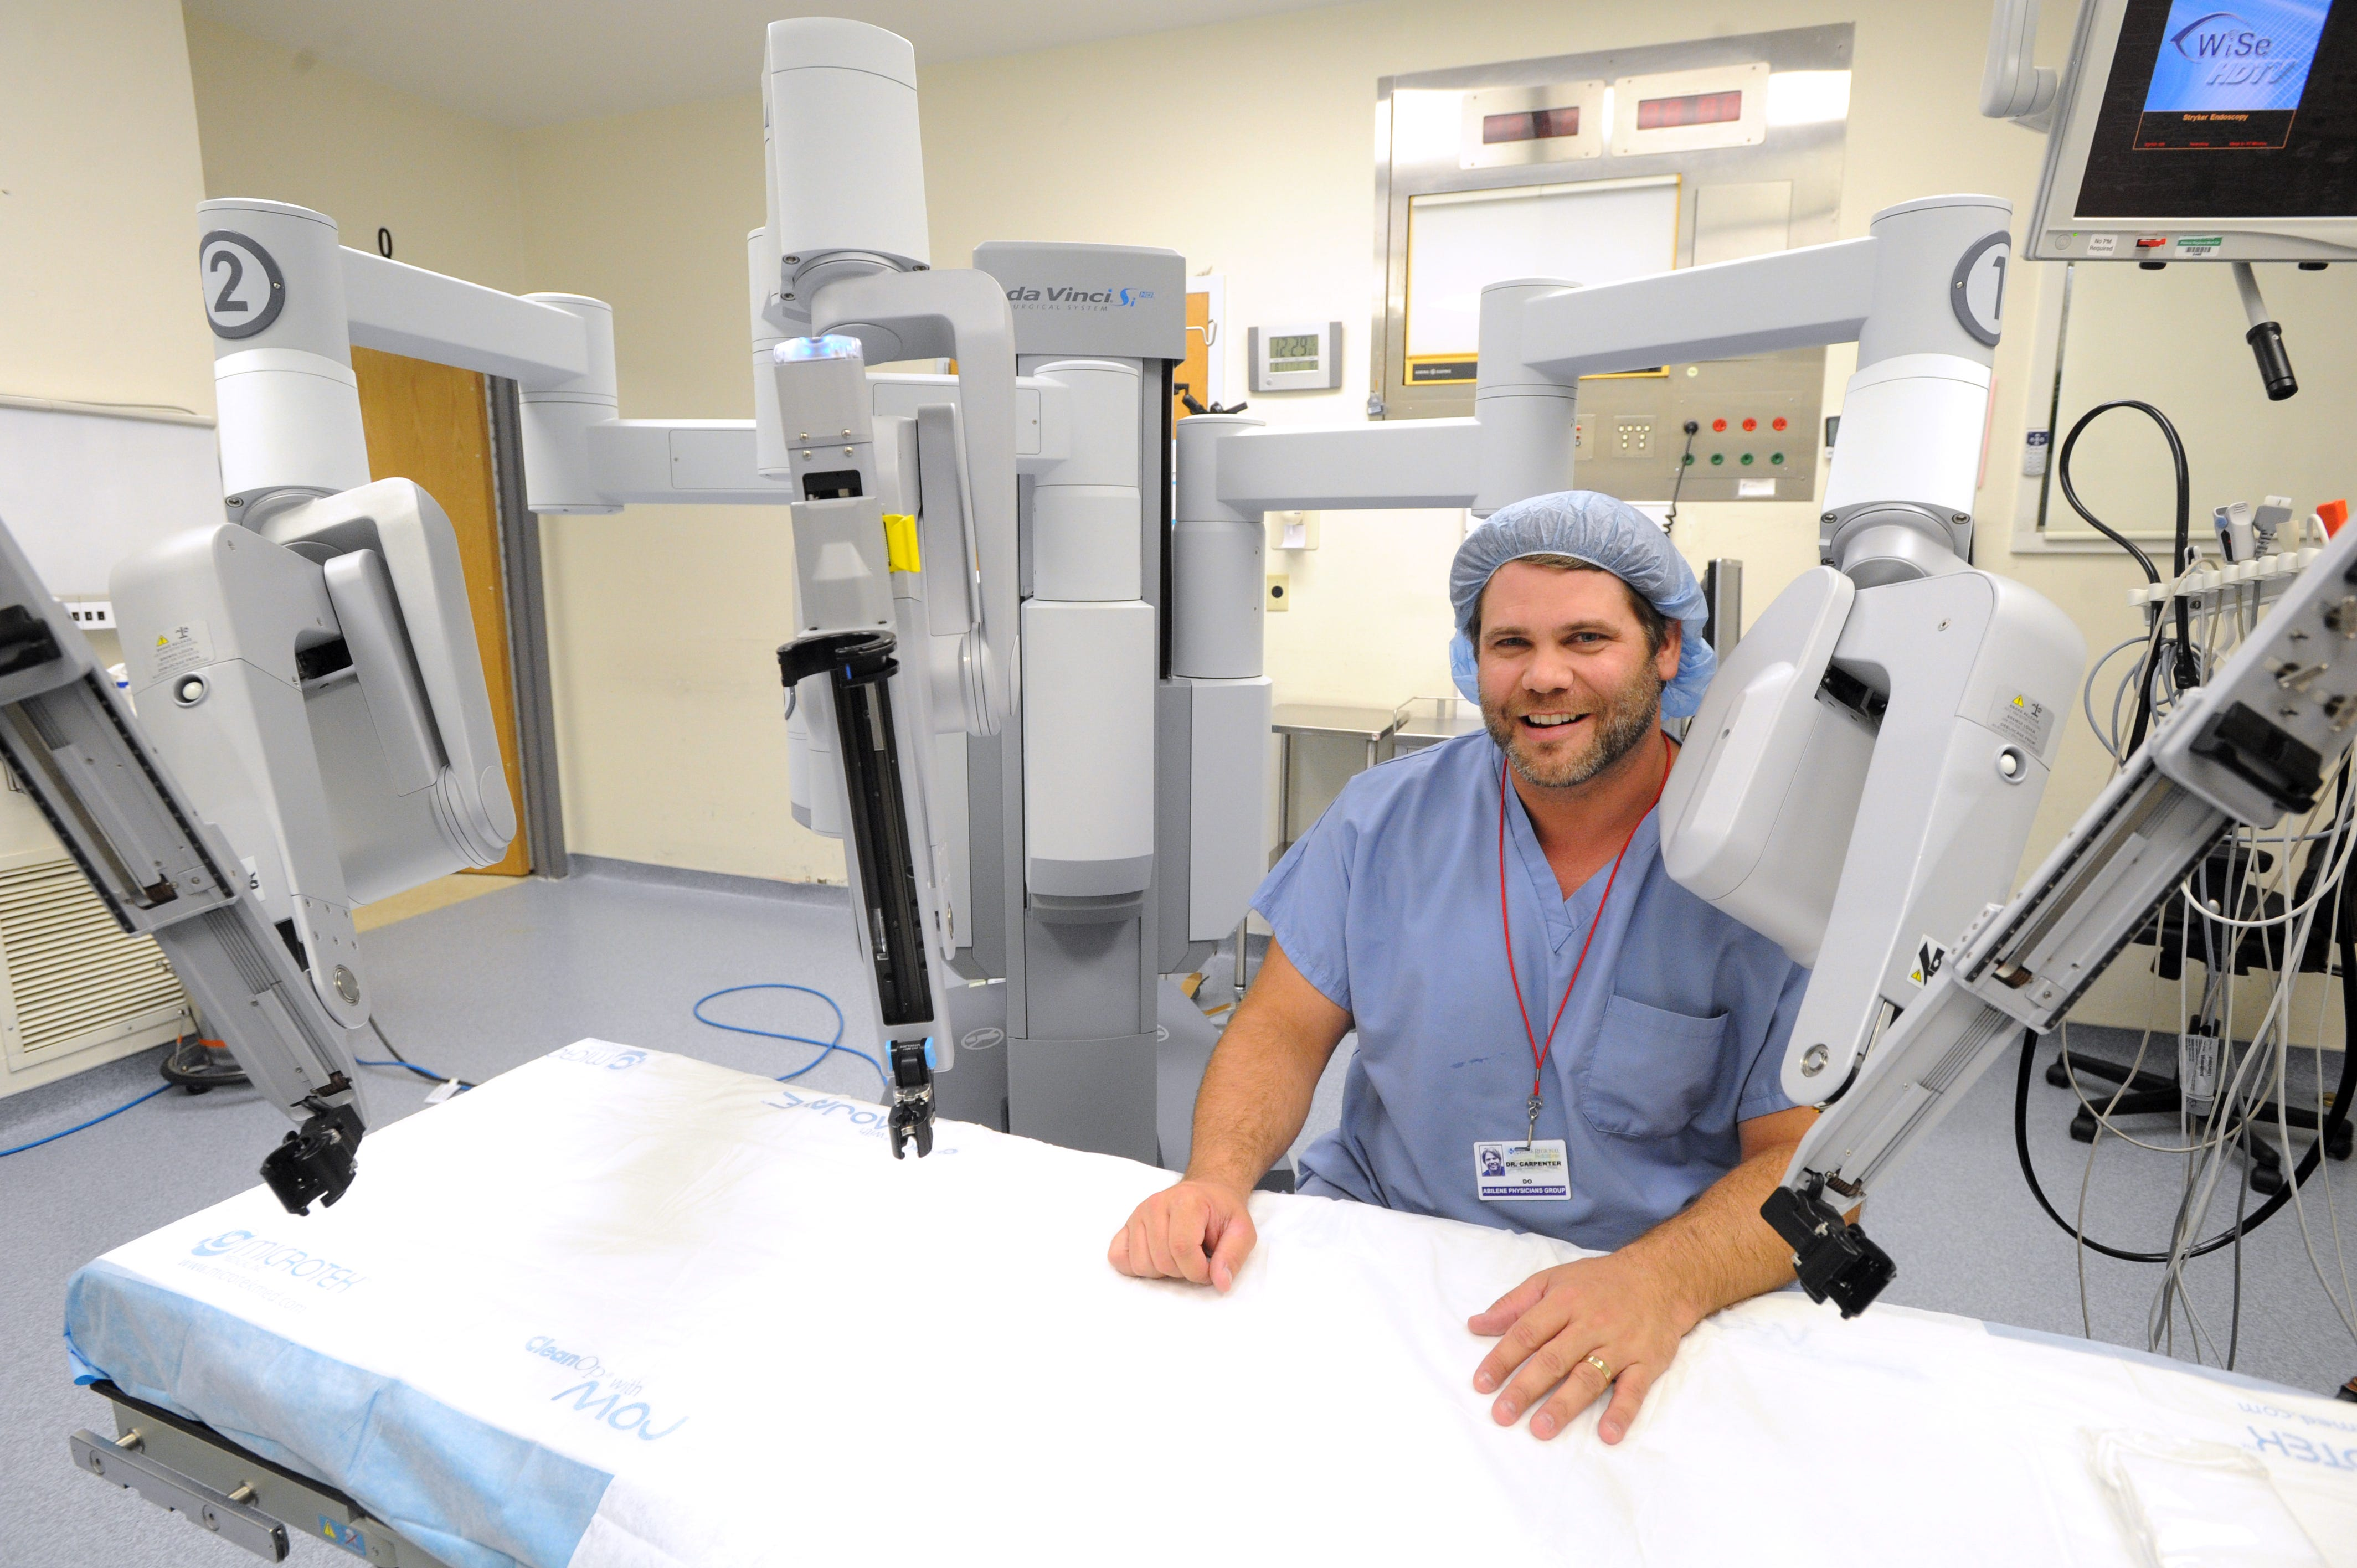 Theres Now a Robotic Gynecologist That Can Perform Surgery On You